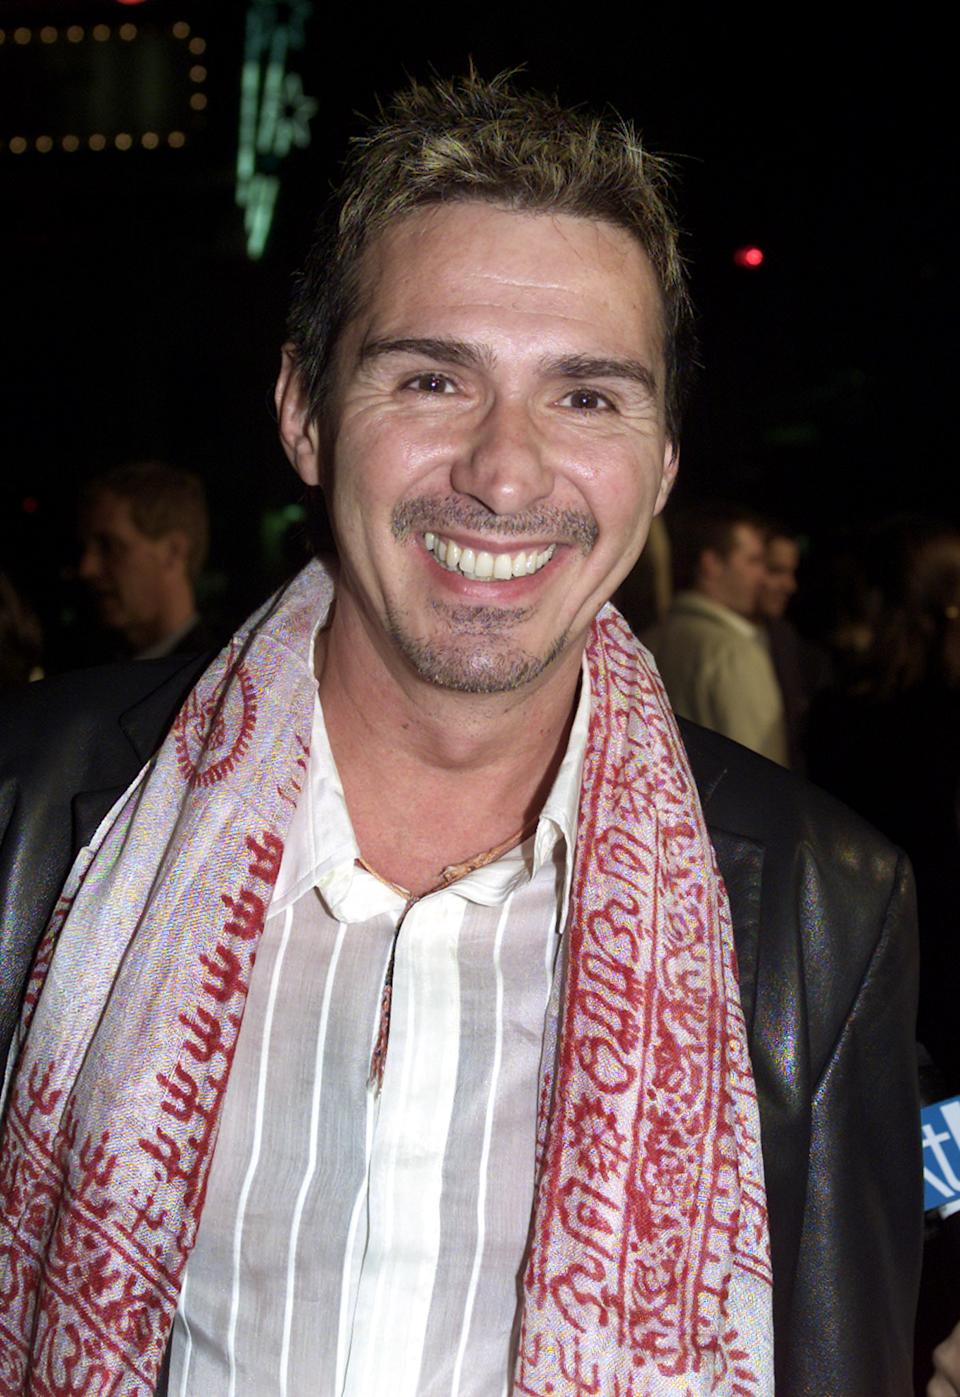 Actor Pedro Damian poses for photographs while arriving to the premiere of